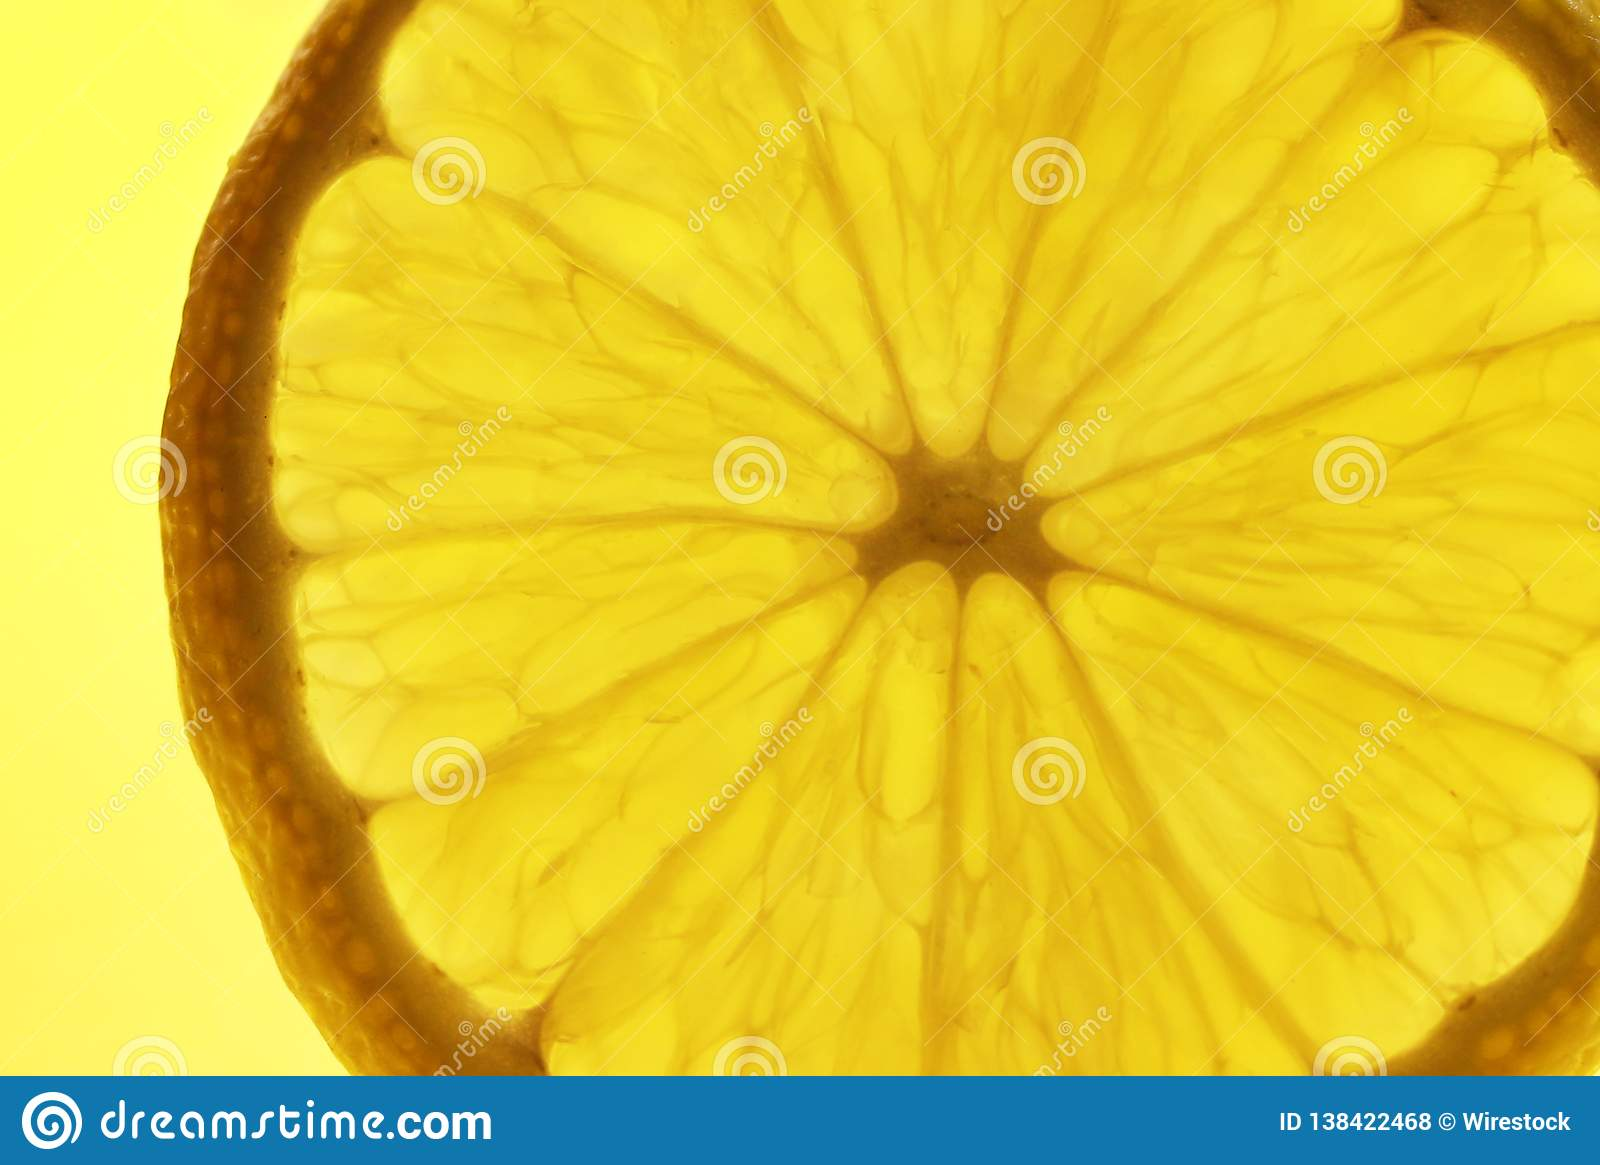 Close Up Lemon Aesthetic Stock Photo Image Of Health 138422468